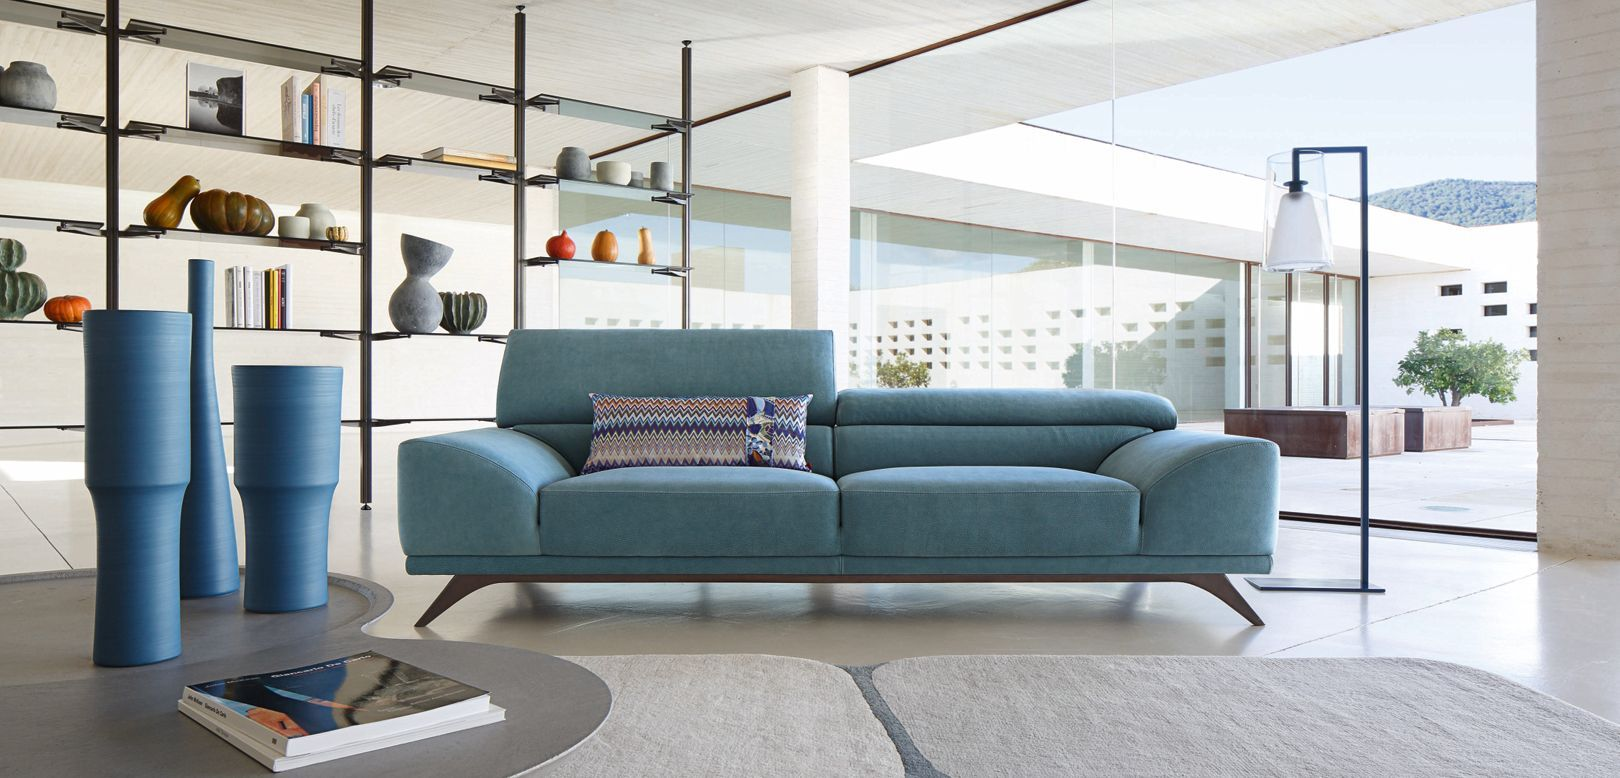 This sofa looks amazing roche bobois huge three seats for Canape en solde roche bobois